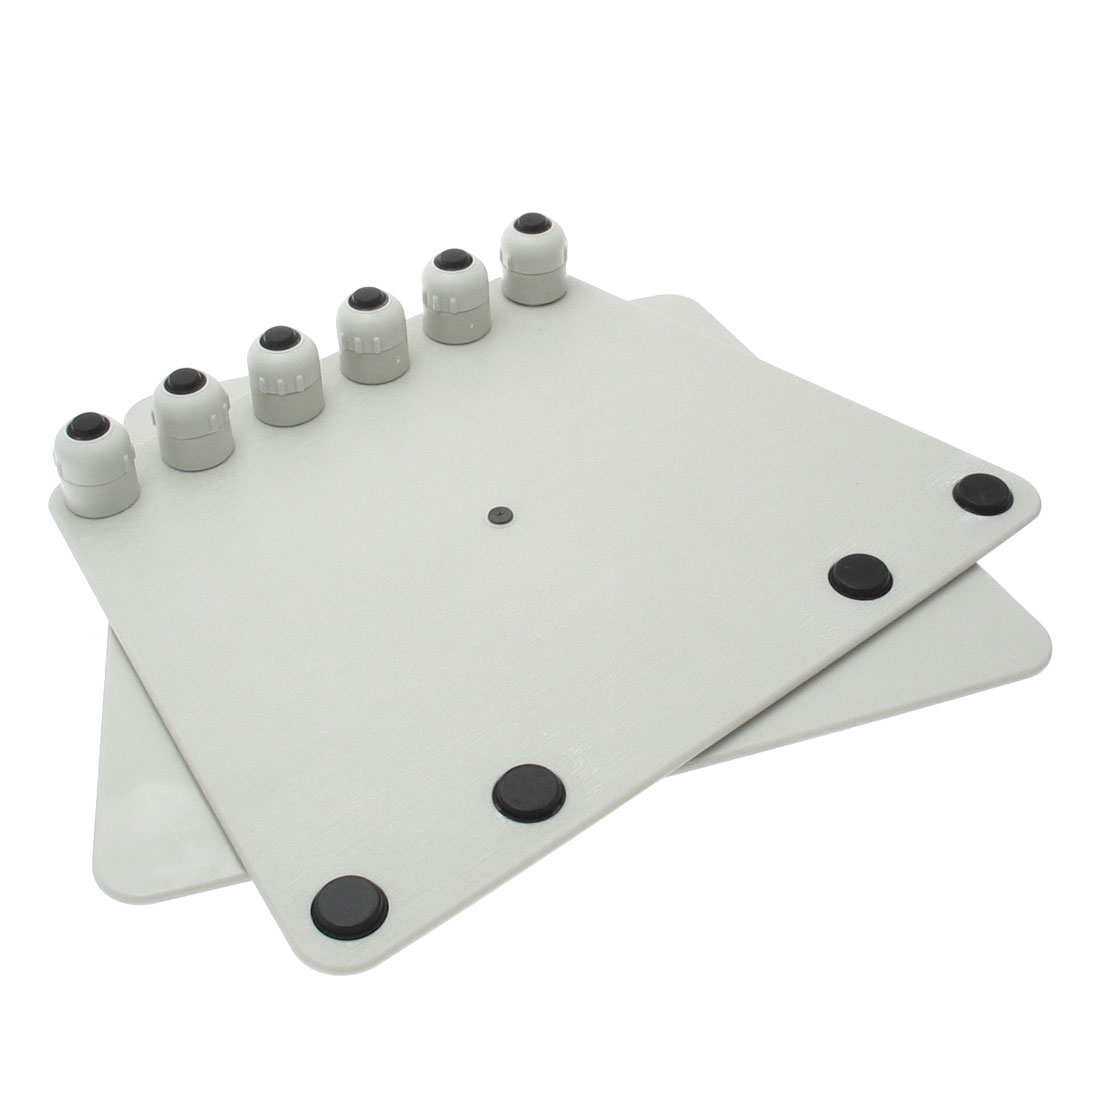 All-directional Cool Pad Dock Stand for Notebook Laptop - White